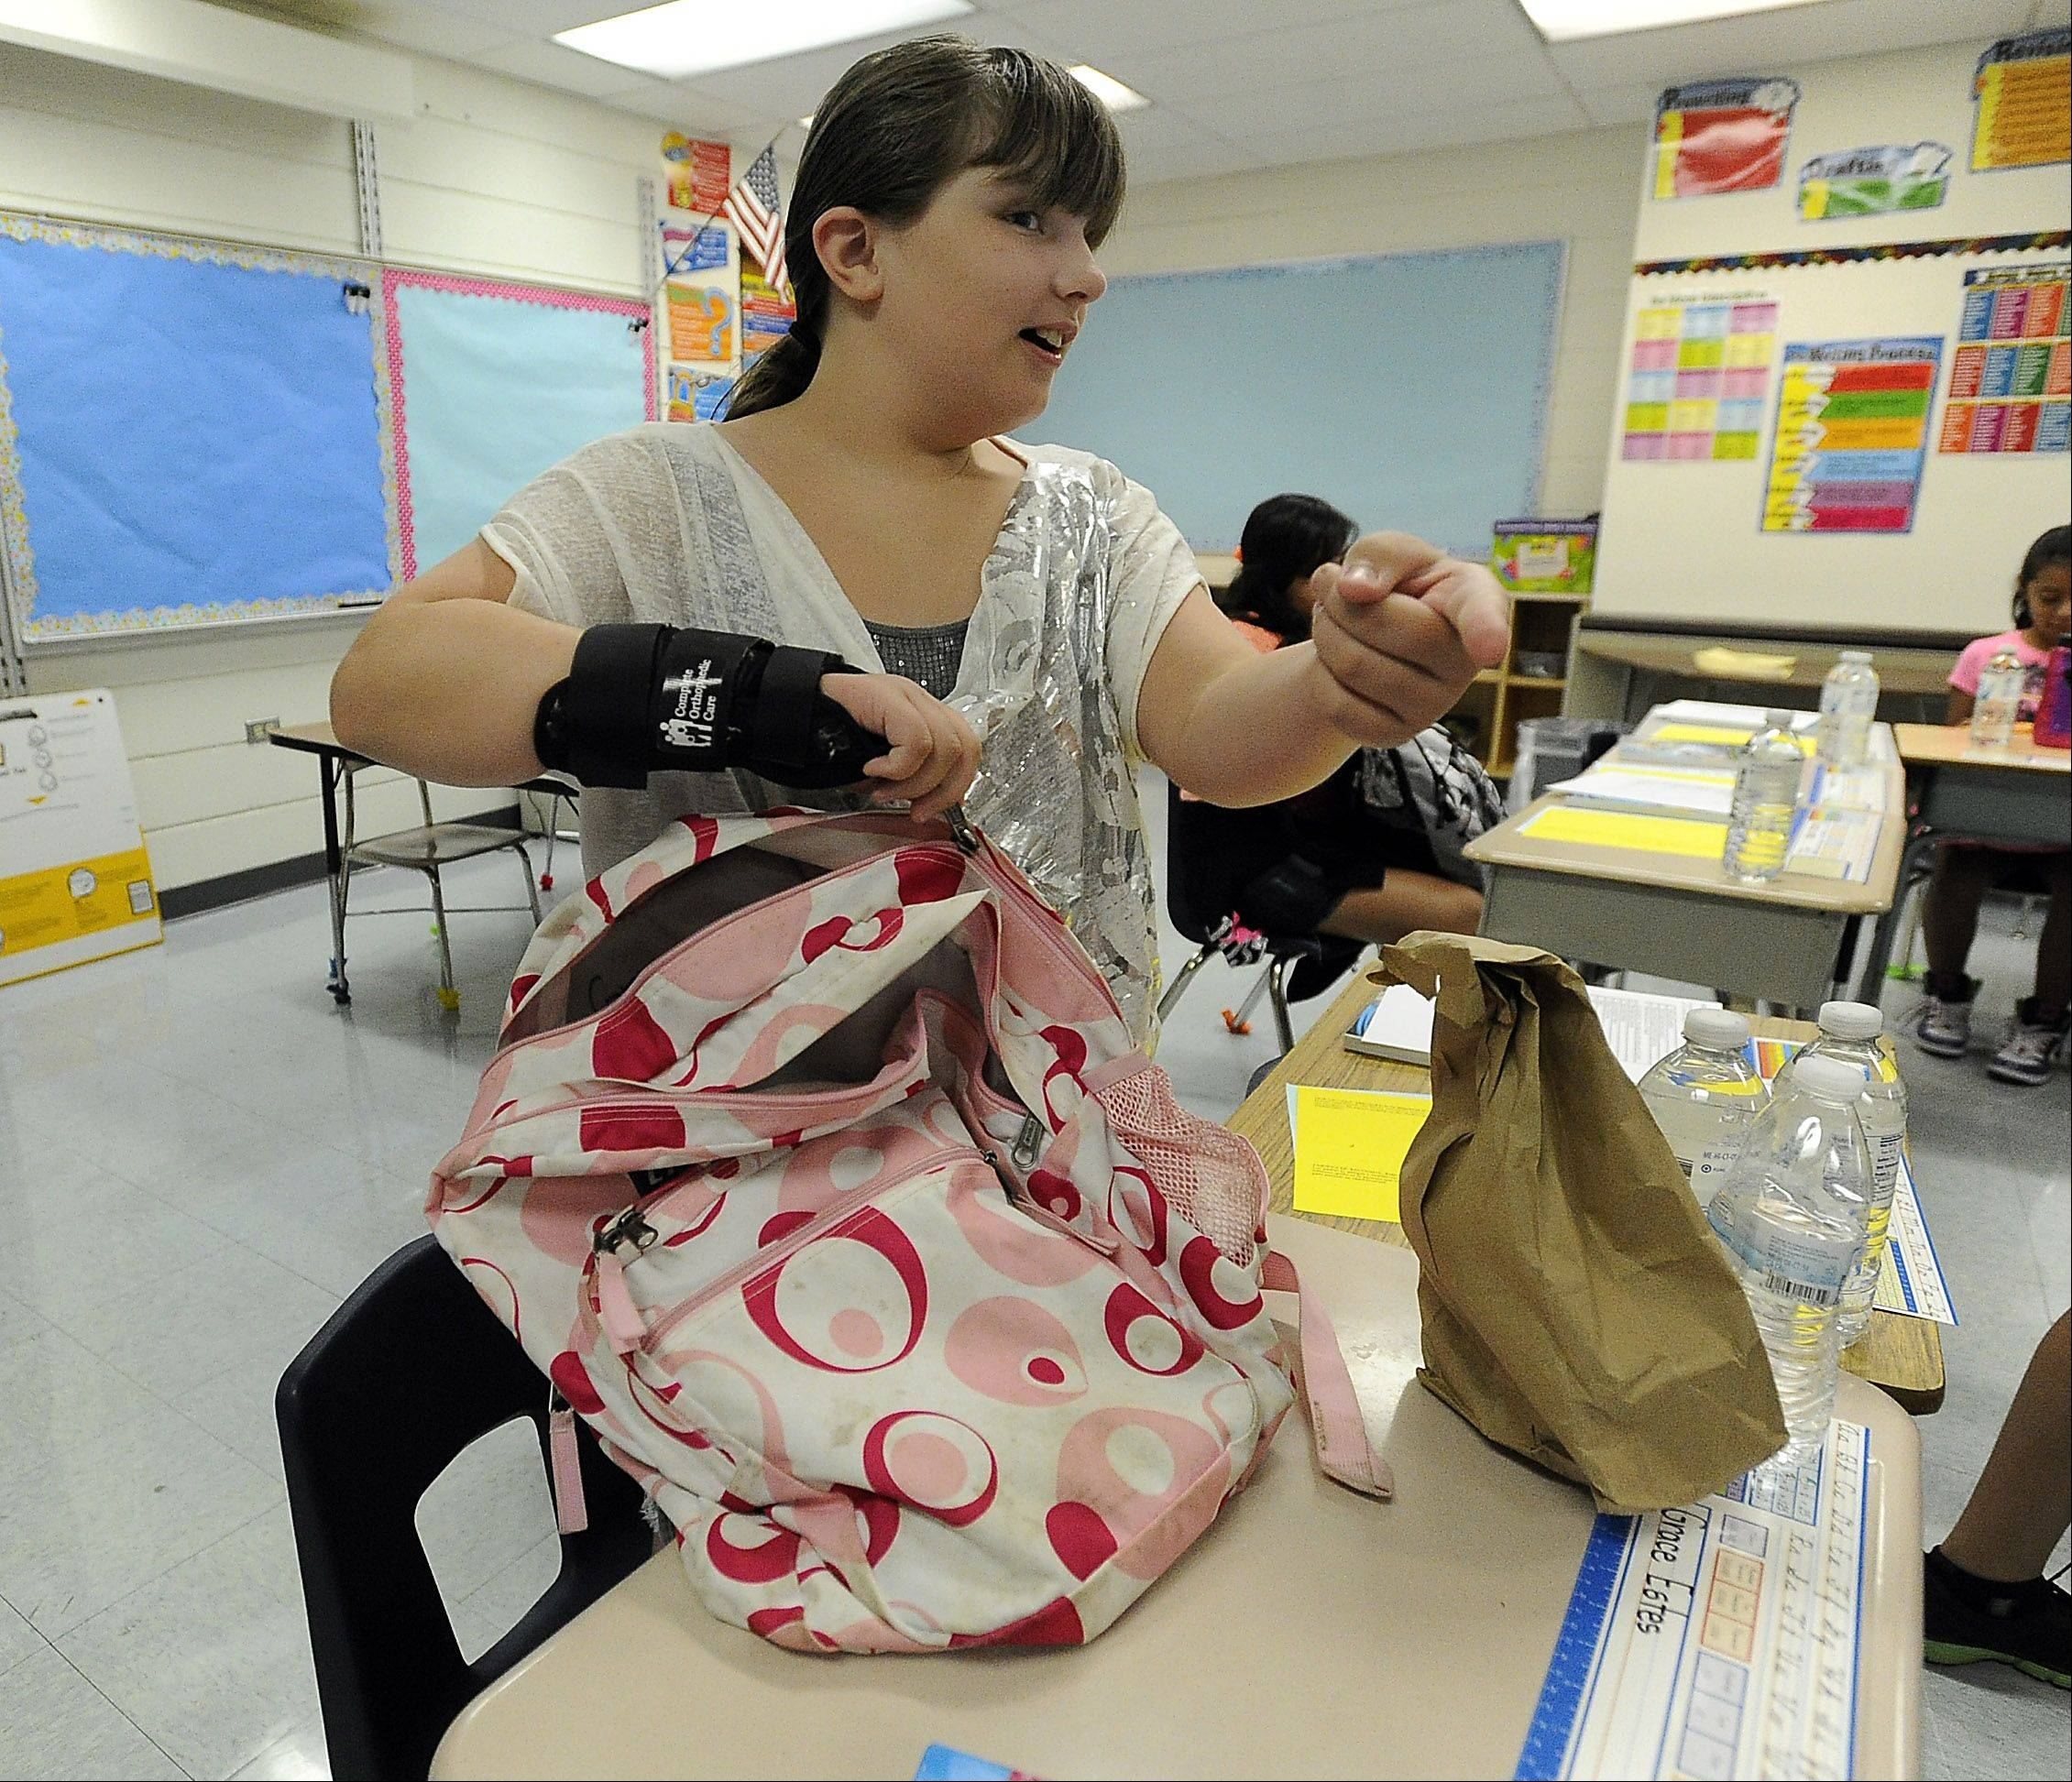 Grace Estes, 9, unpacks her school supplies on her first day back to school at Field Elementary School.